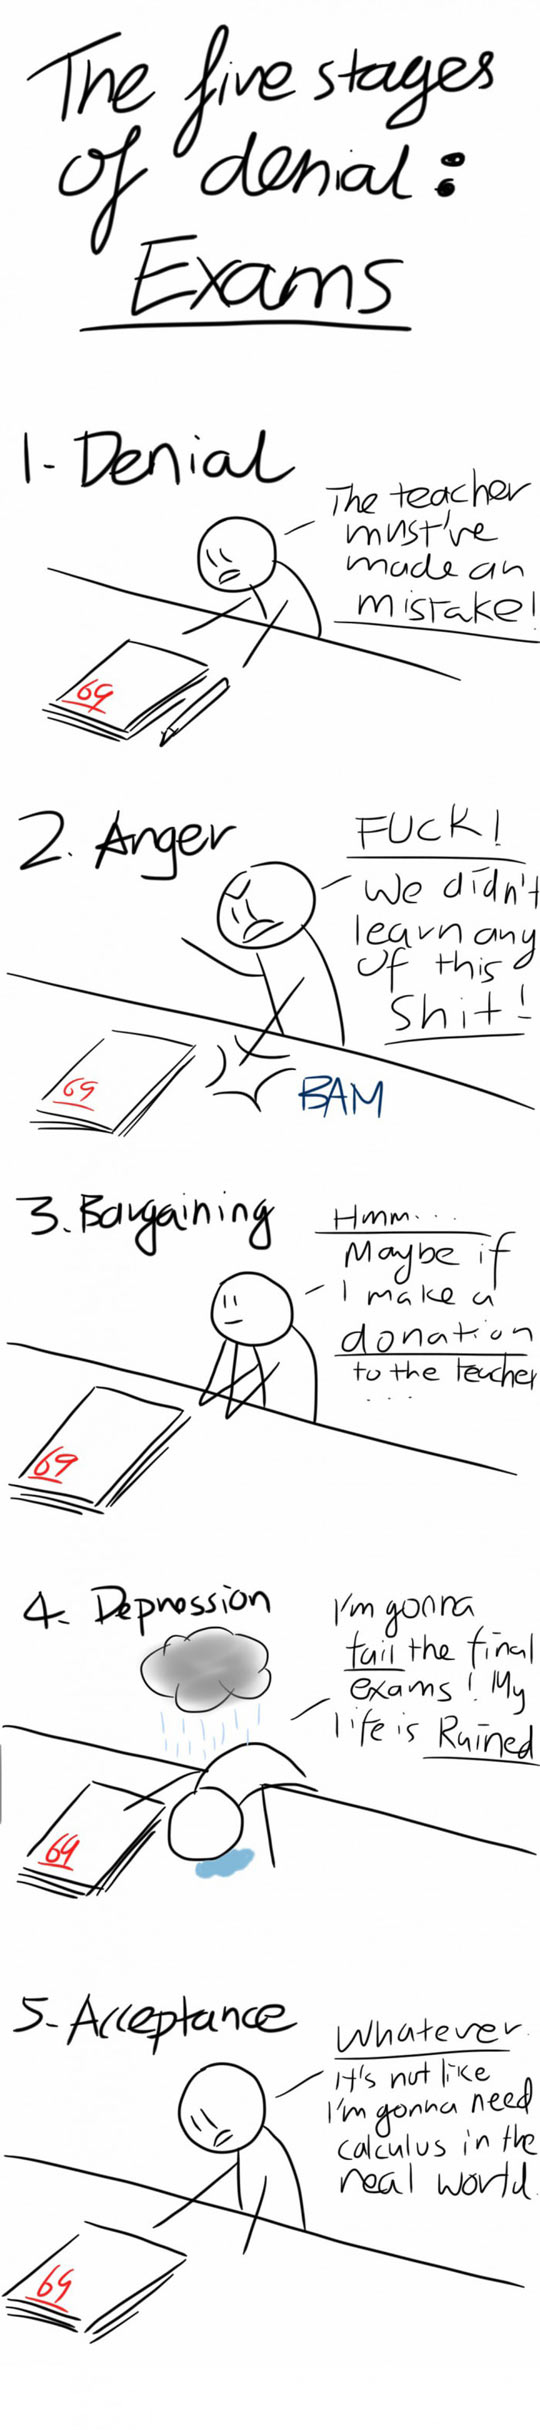 funny-stages-final-exams-denial-comic